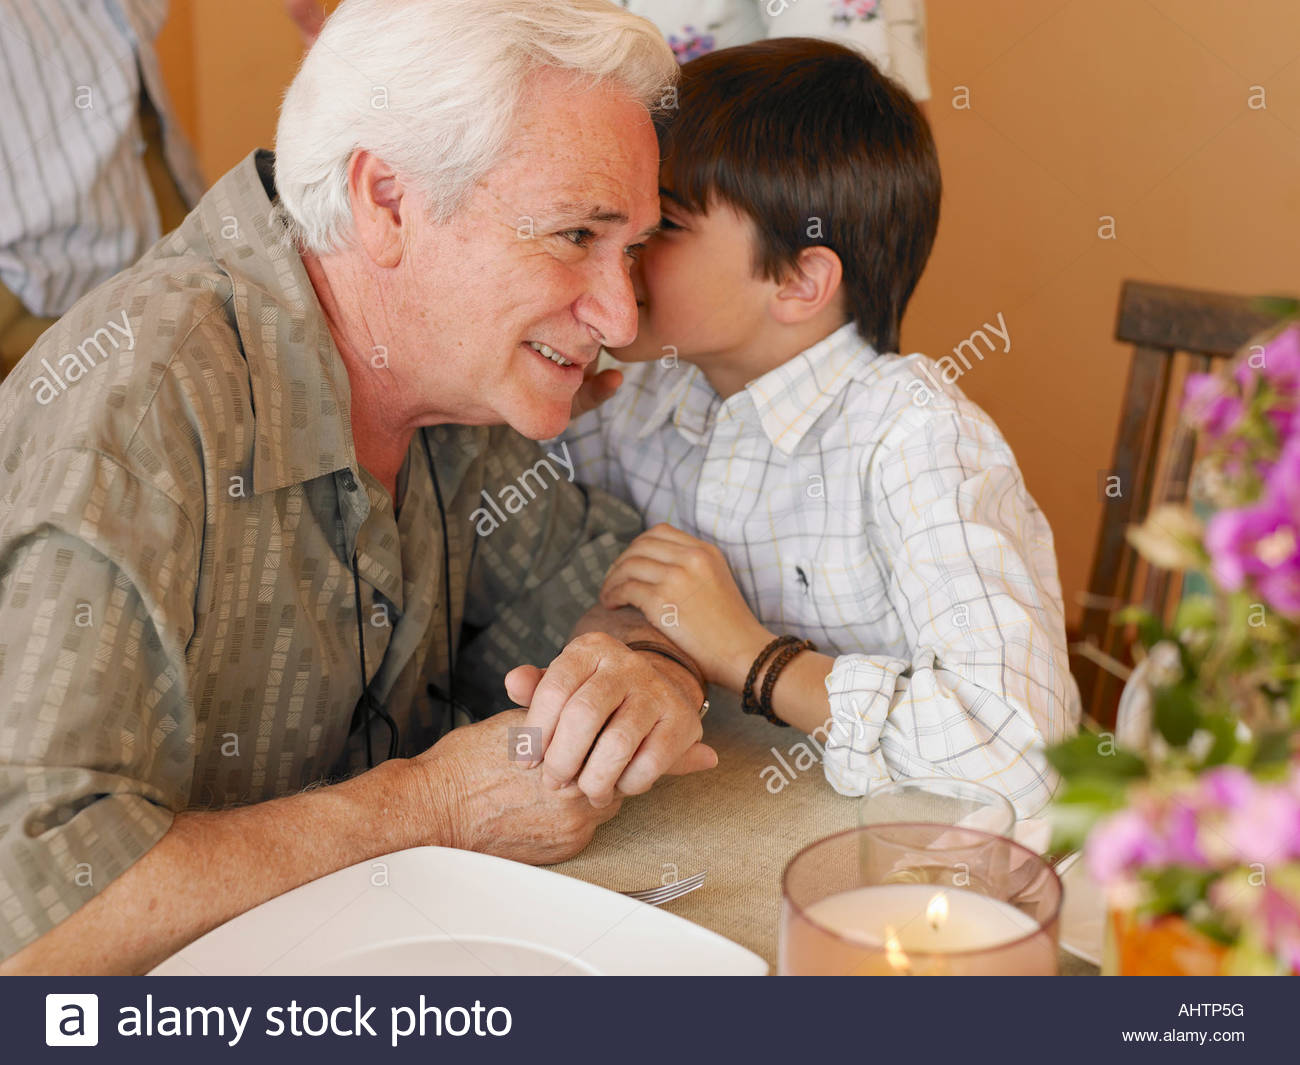 Boy (8-10) whispering in grandfather's ear at dining table Stock Photo